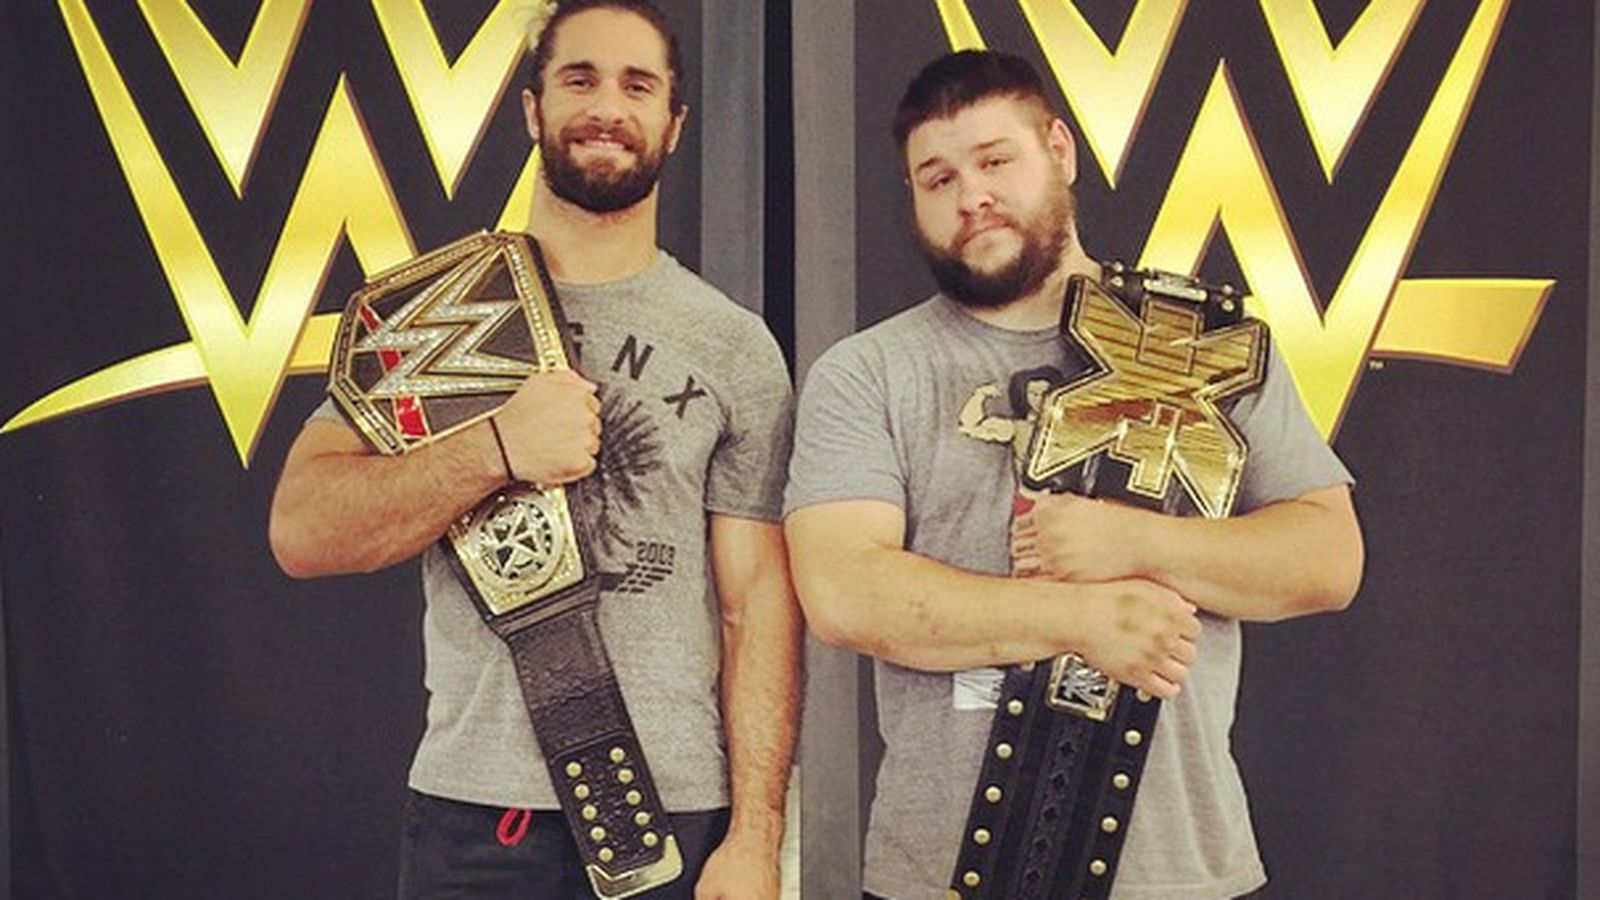 Enjoy this picture of Seth Rollins and Kevin Owens